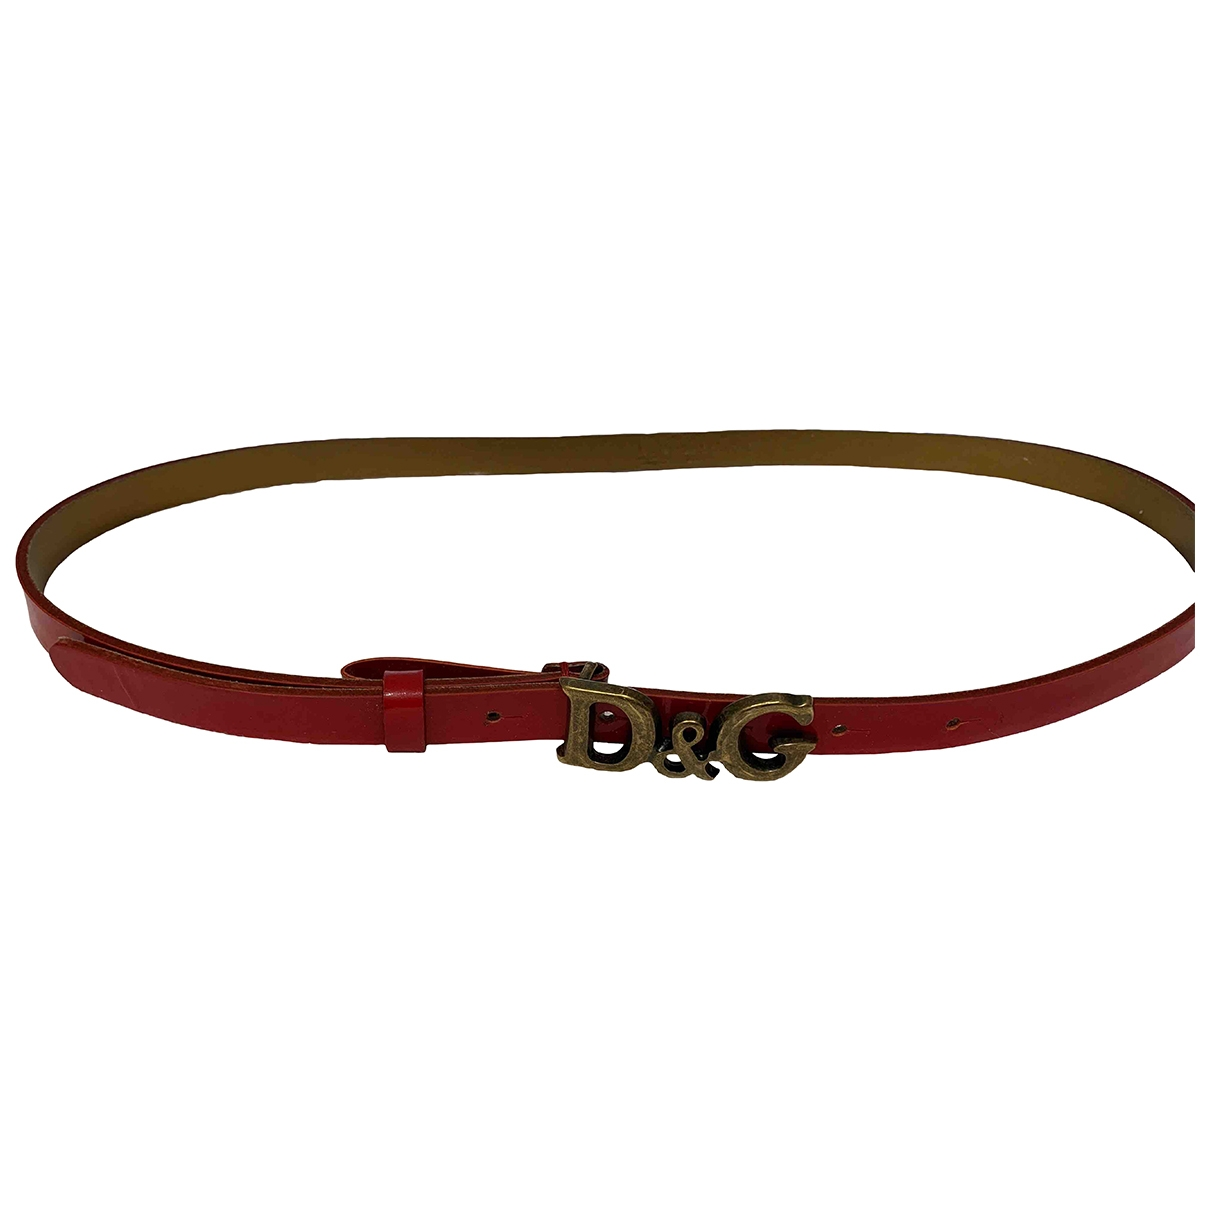 D&g \N Red Patent leather belt for Women XS International